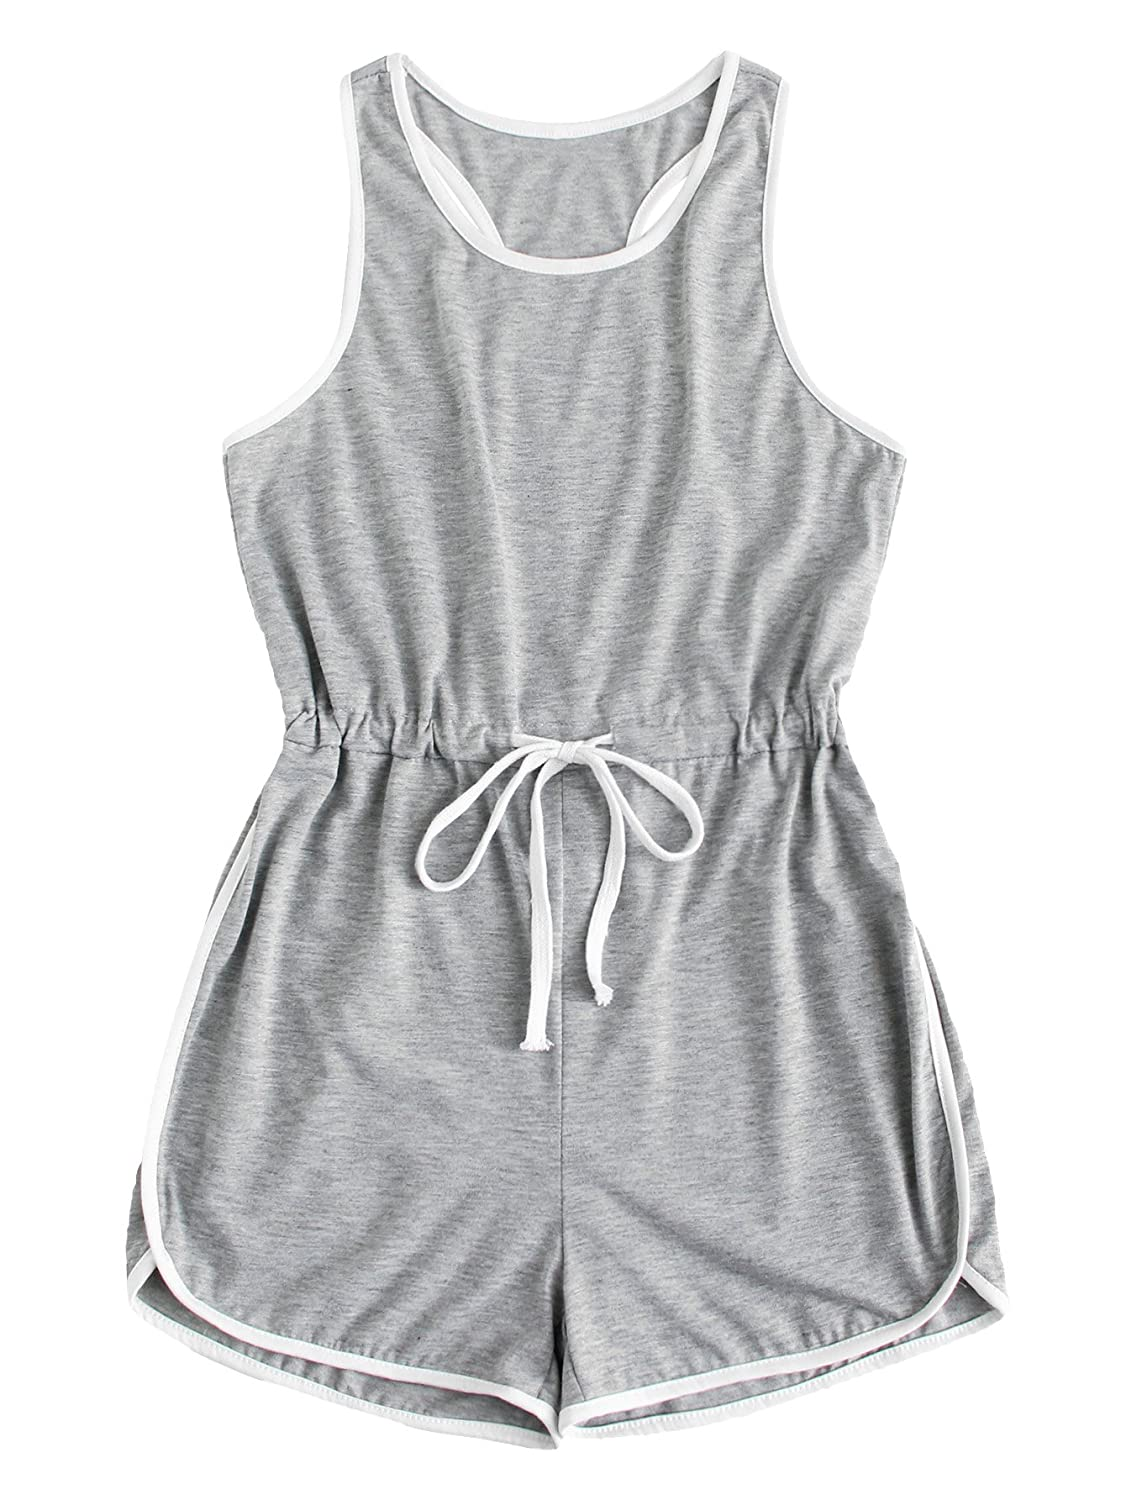 7b969721941 Amazon.com  Romwe Women s Summer Casual Sleeveless Drawstring Waist Tank  Tops Ringer Short Romper Jumpsuit Outfits  Clothing